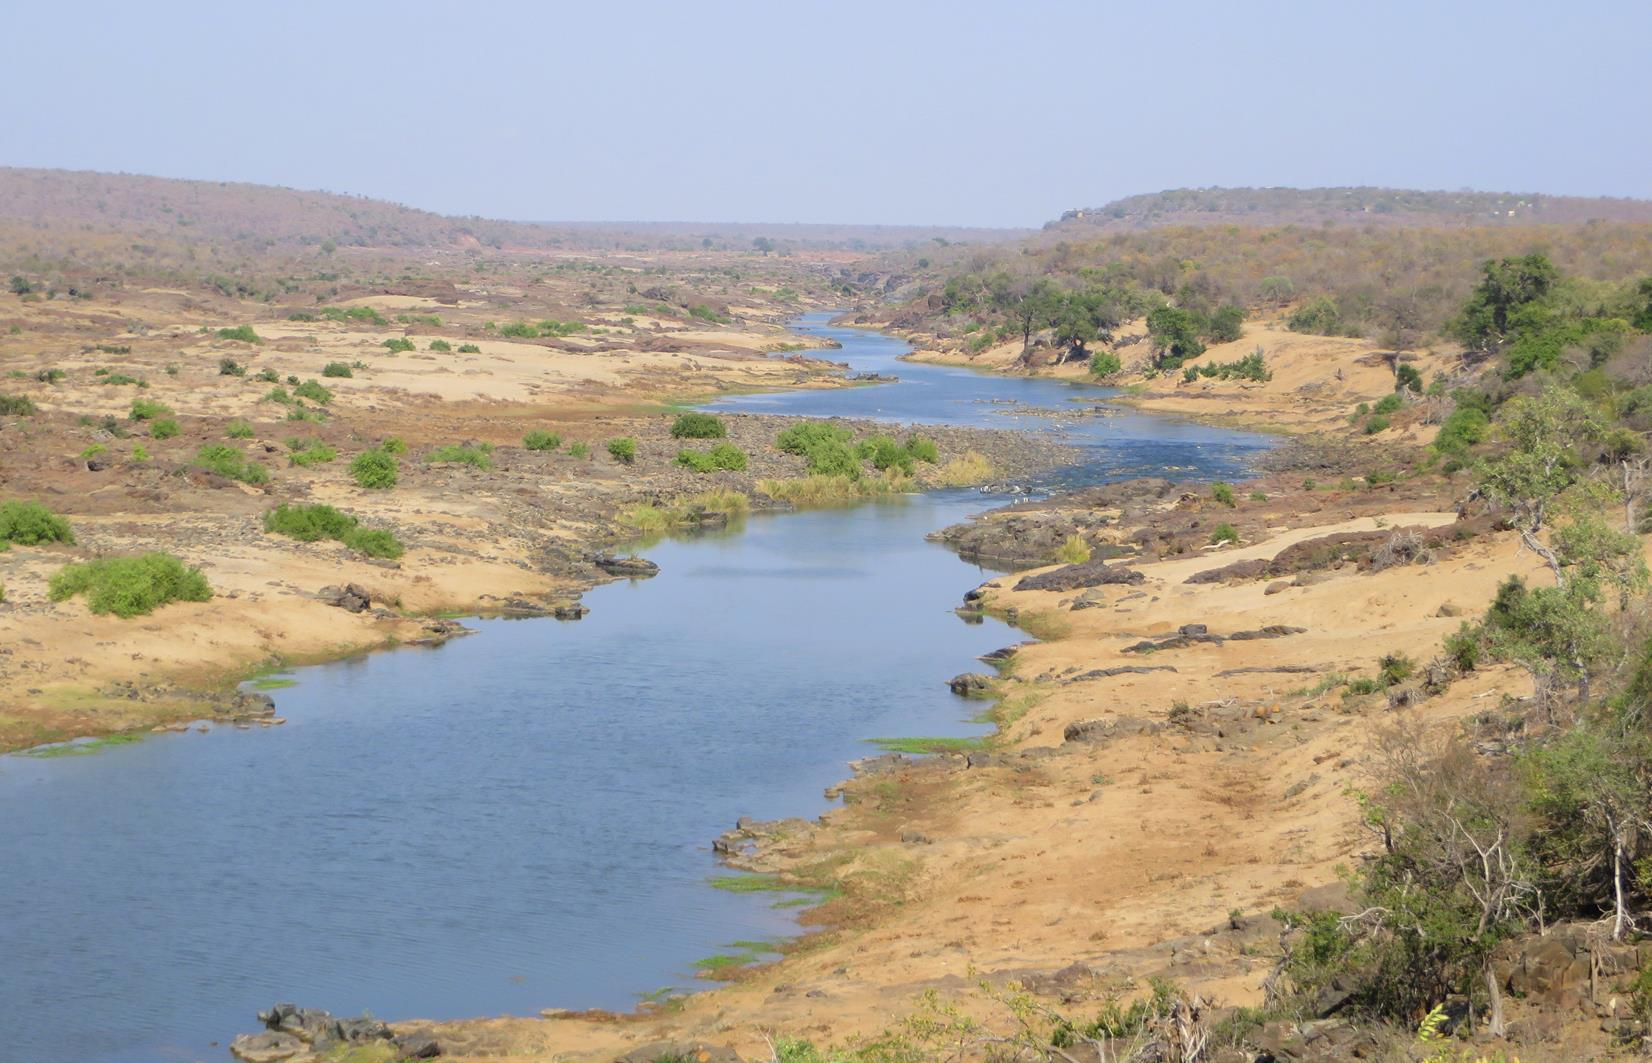 View of the Olifants River.